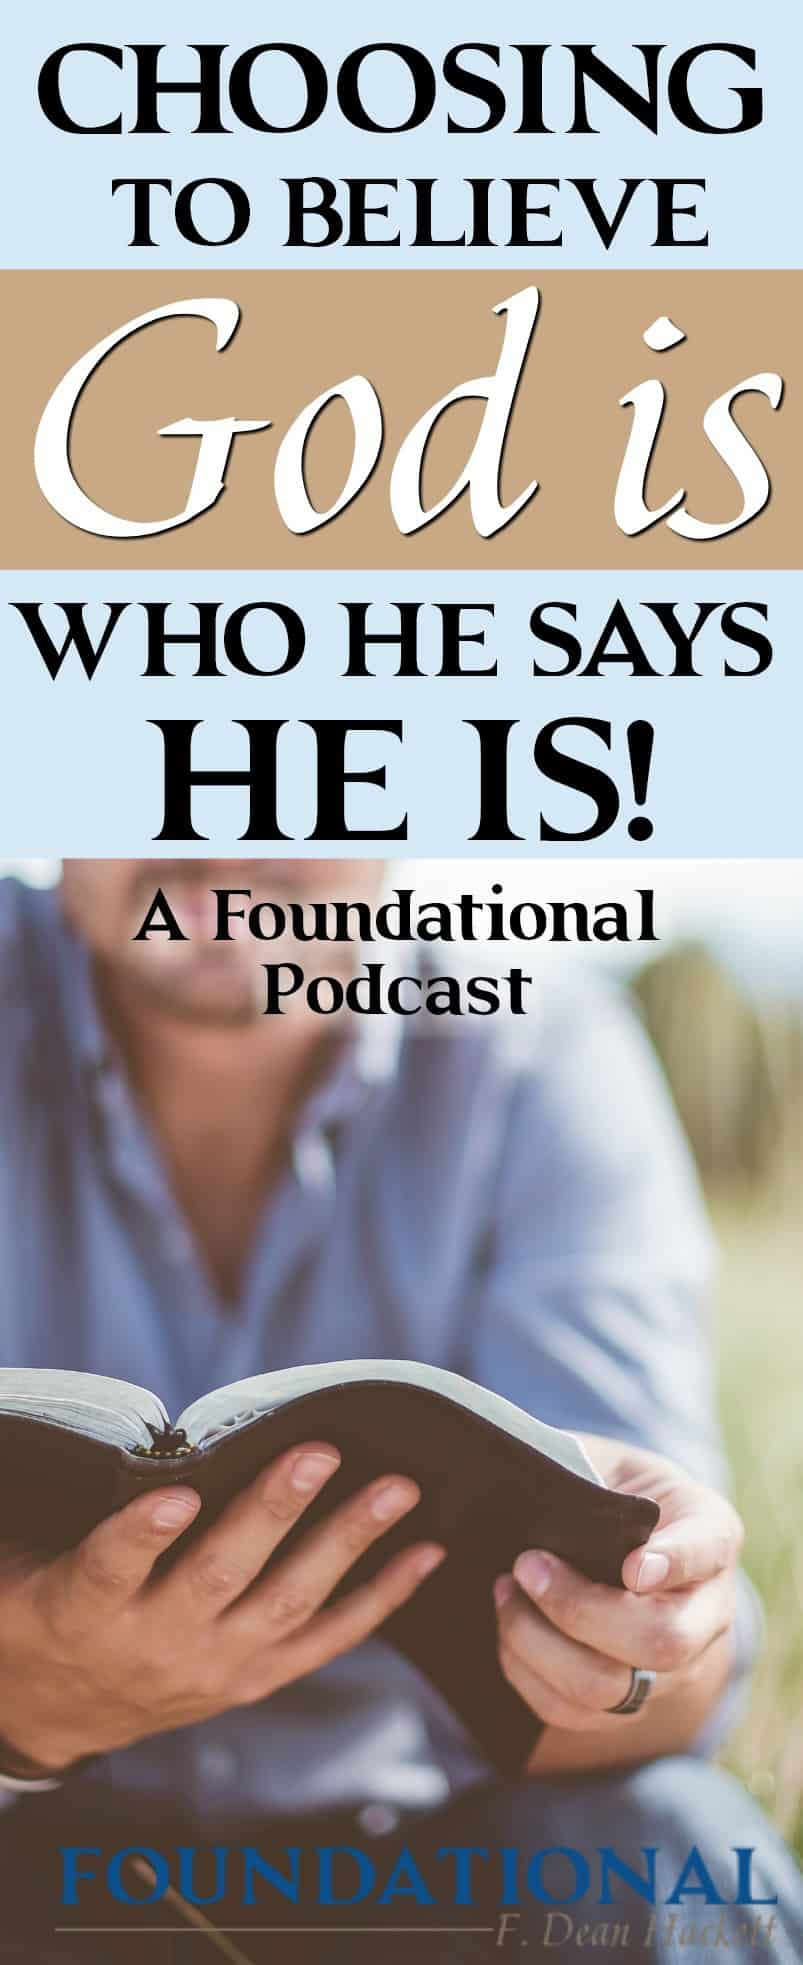 "Choosing to Believe God Is Who He Says He Is. If you struggle with believing God, this podcast series on ""You Win Or Lose, Its Your Choice"" is for you. Learn today about how Moses teaches us how we can believe God is who He says He is."